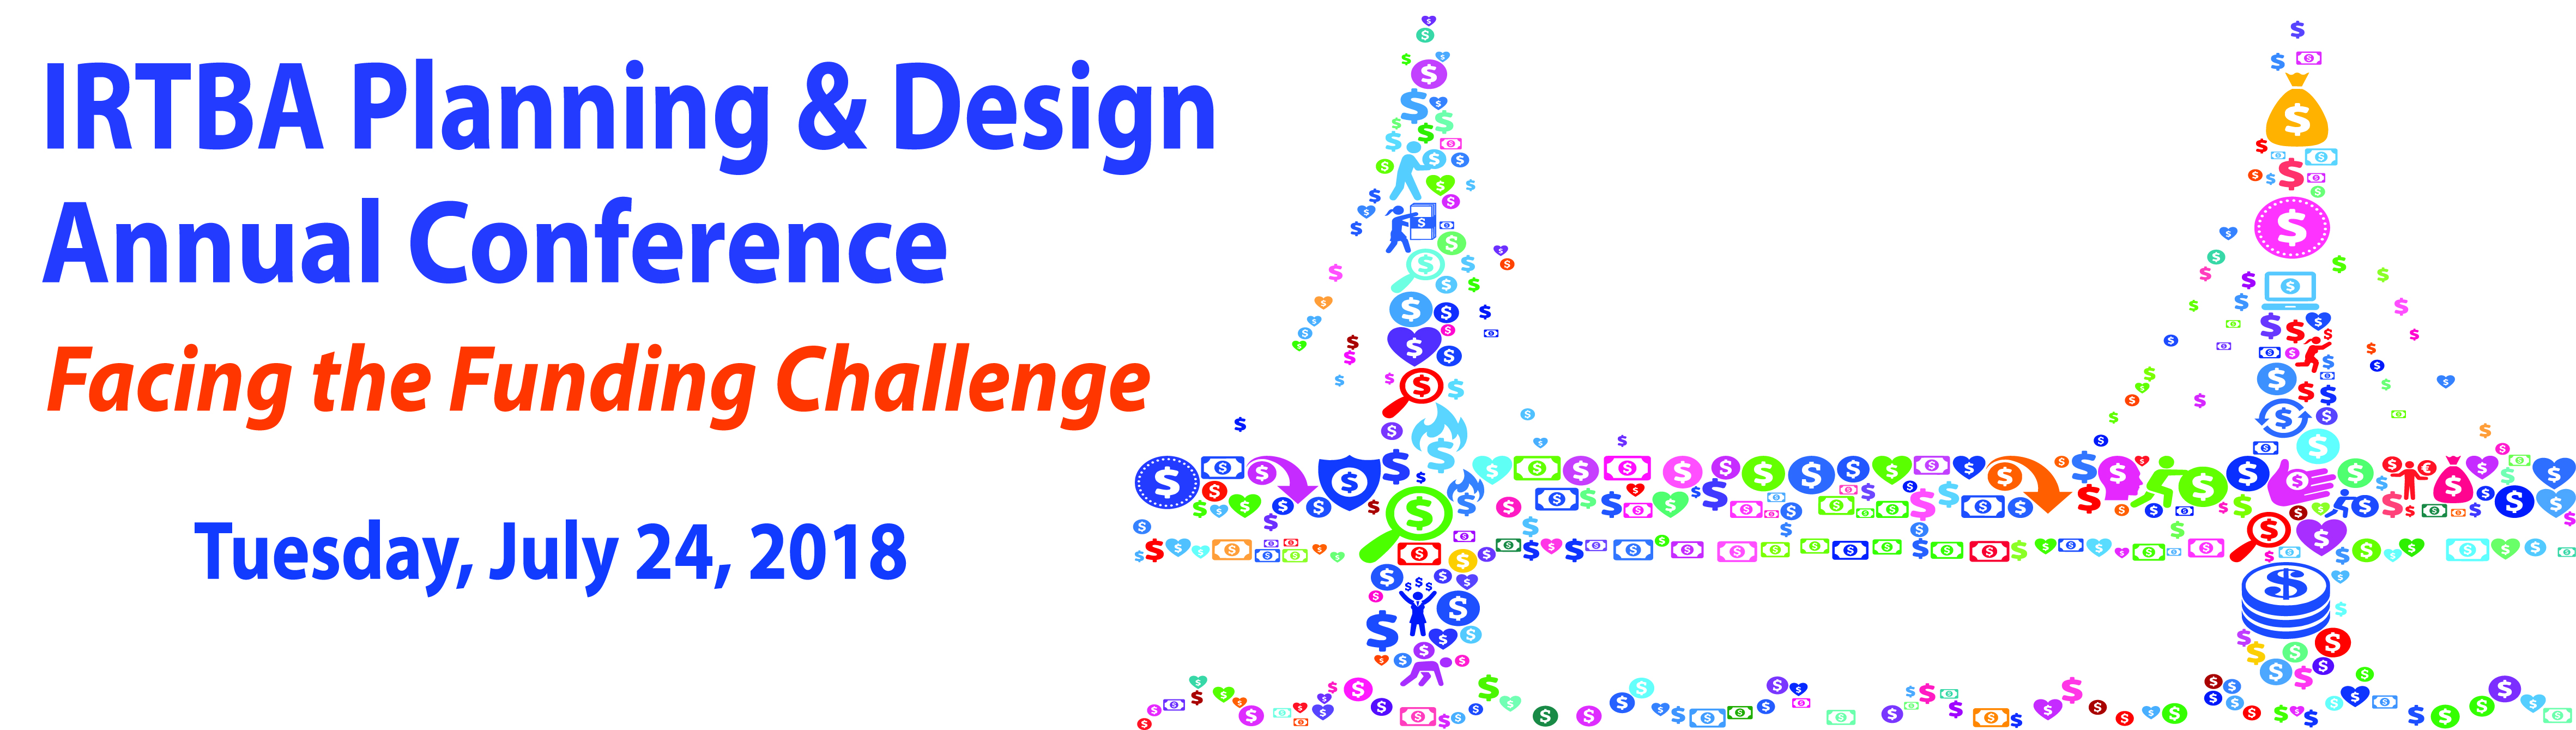 Planning & Design Annual Conference